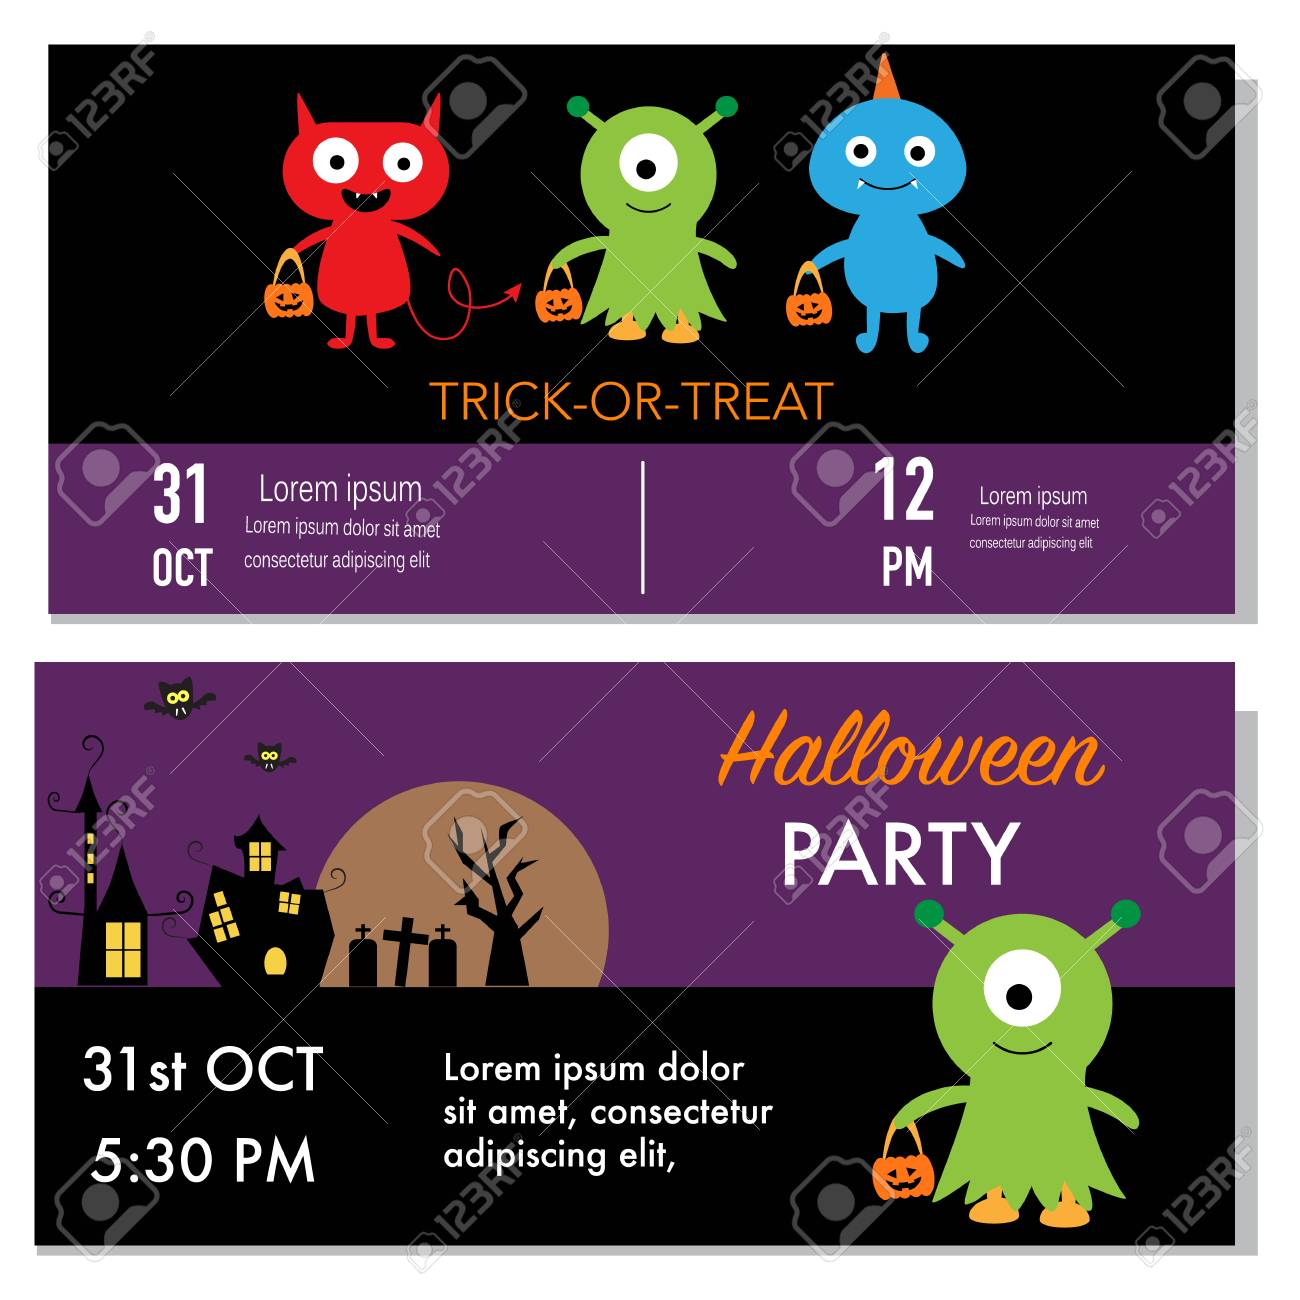 Halloween Party Invitation Cards Monster Character